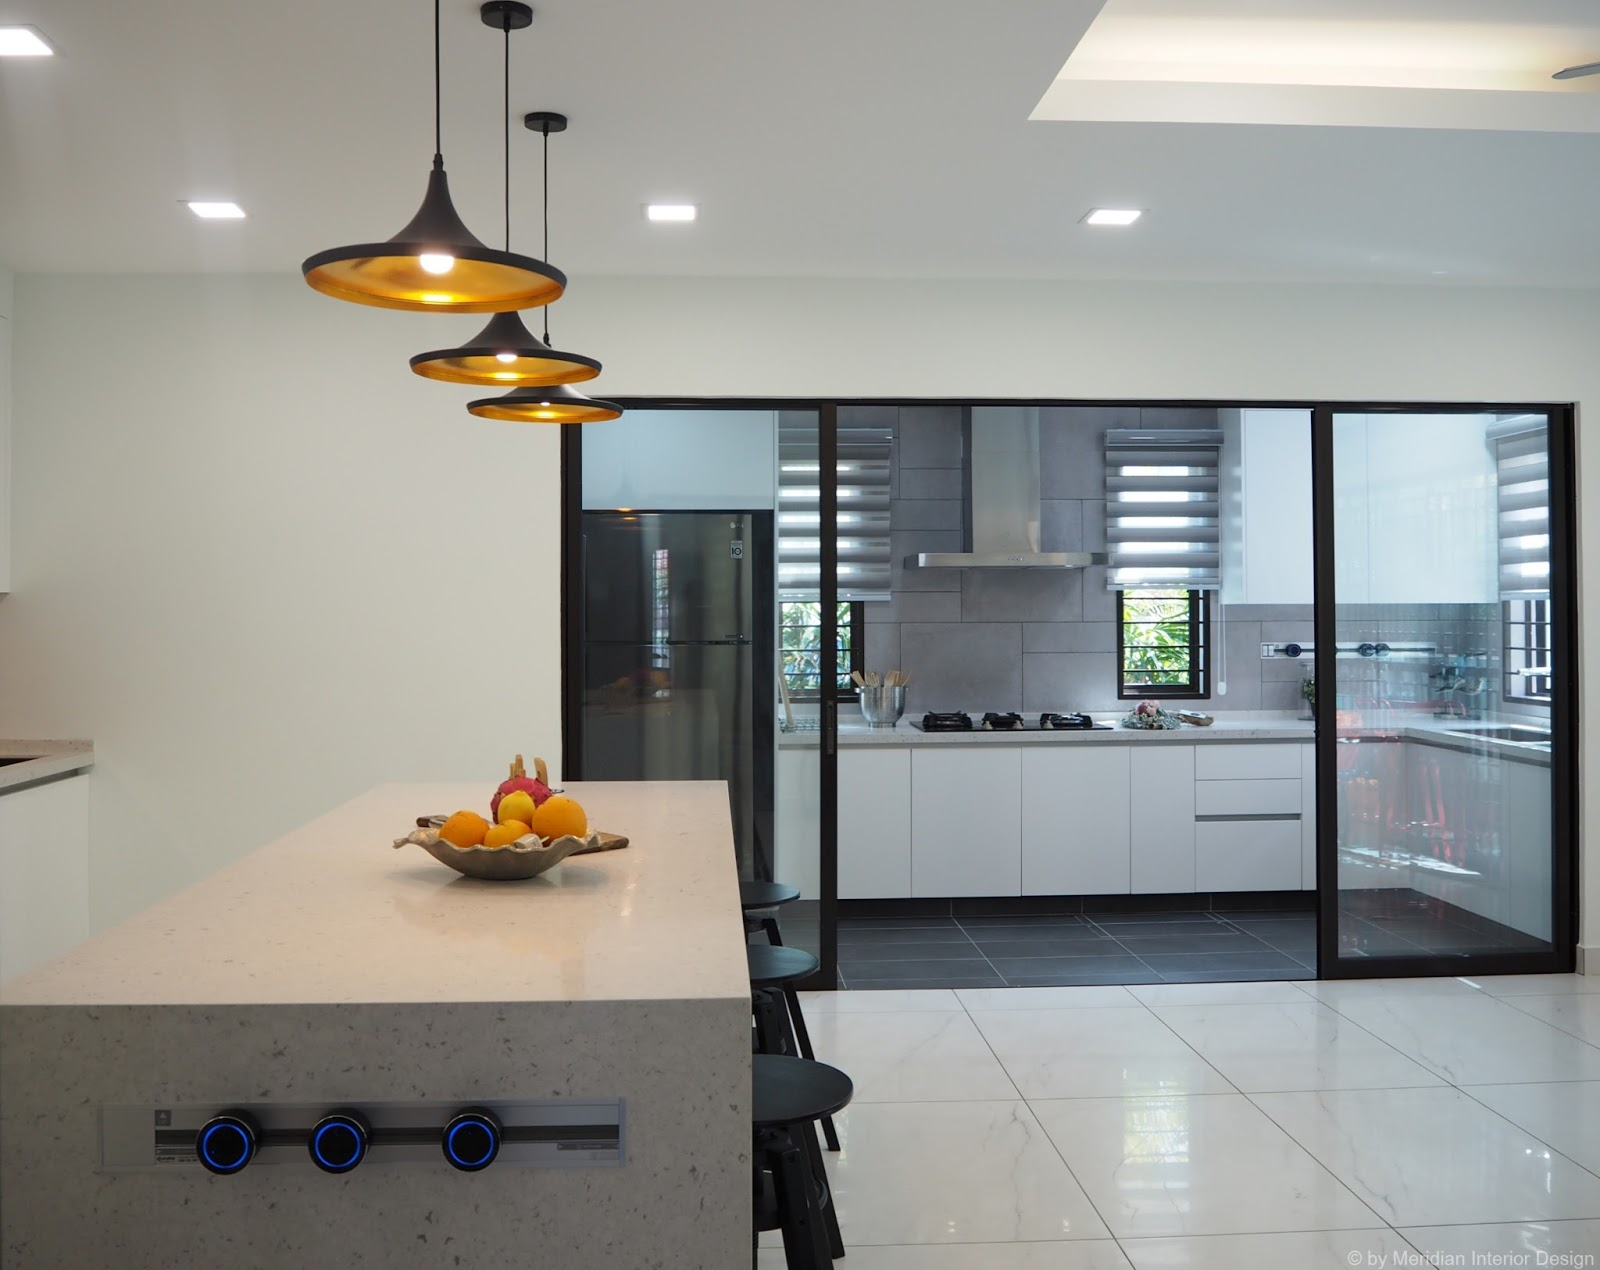 Wet And Dry Kitchen Design. Dry And Wet Kitchen Miss Karen By Made .